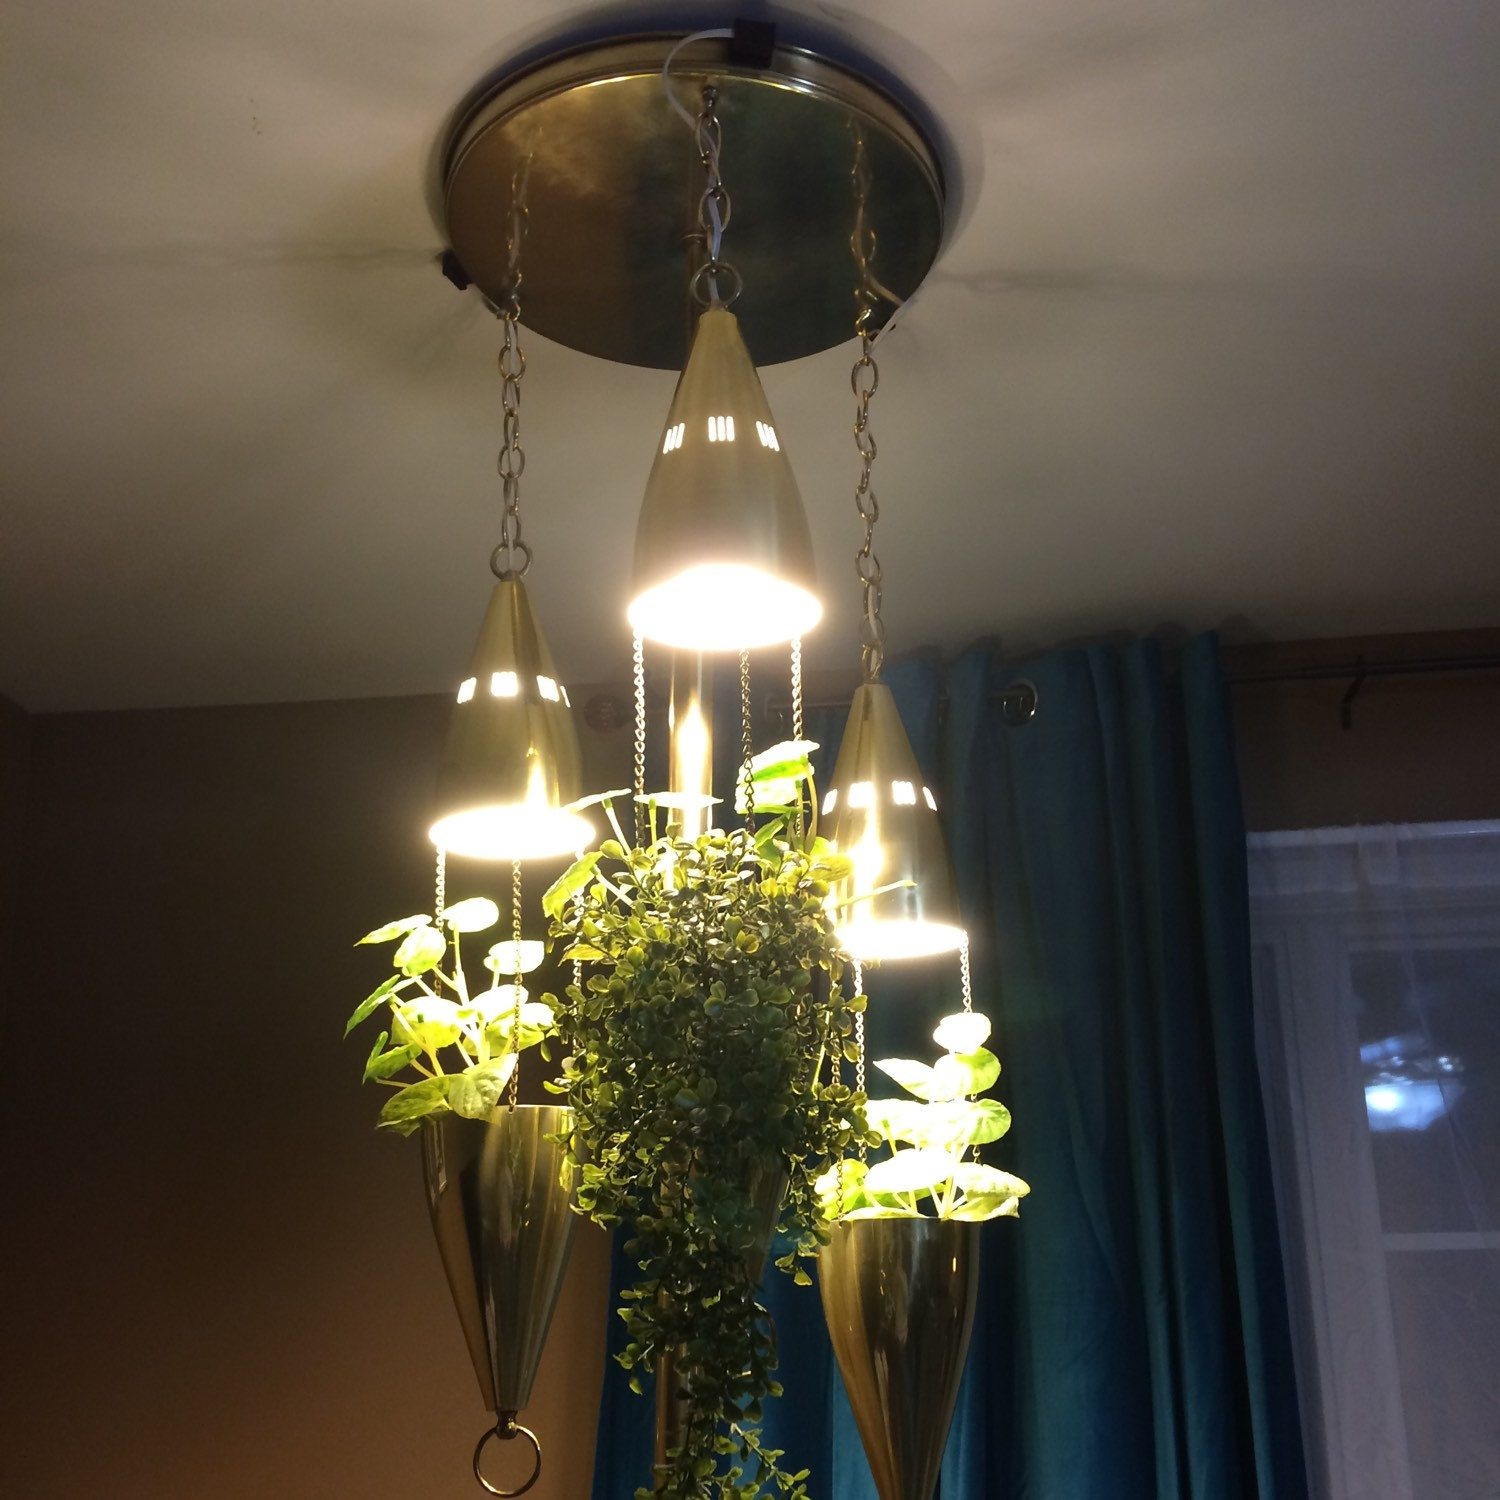 the most amazing tension pole lamp you will ever see brass finish polished new wiring and sockets new switch hanging lights feature bullet planter and  [ 1500 x 1500 Pixel ]